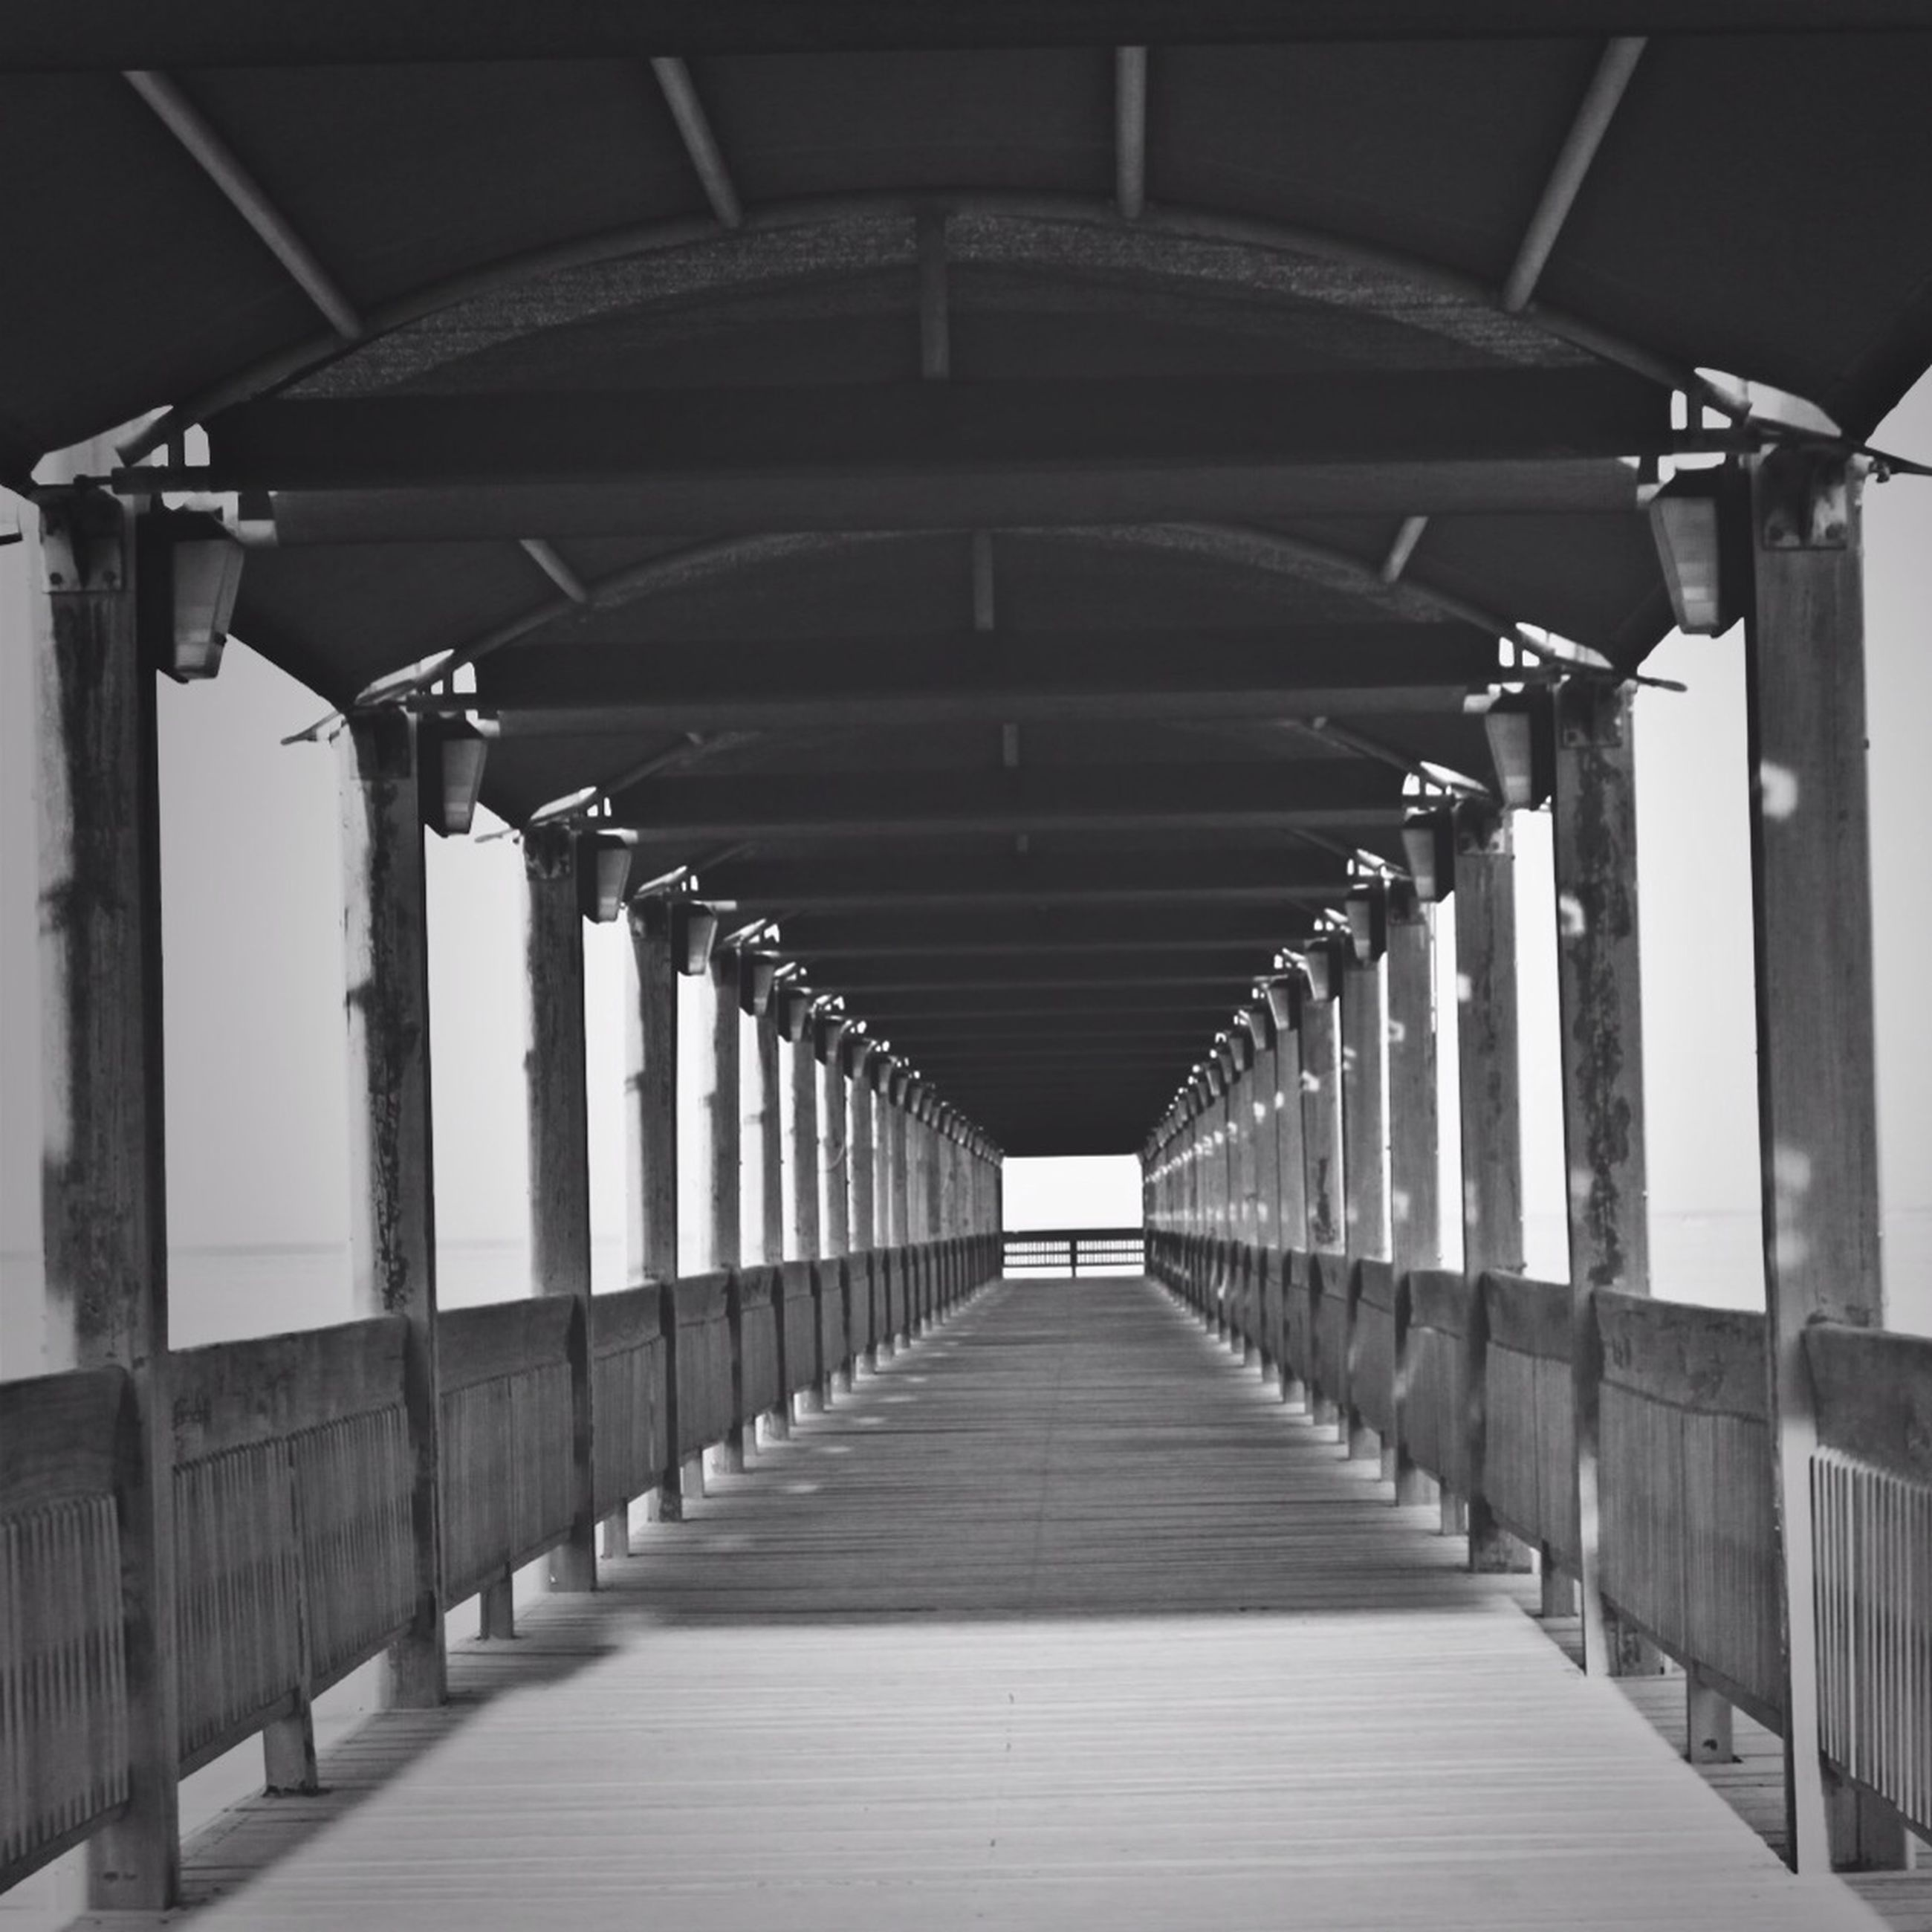 the way forward, architecture, built structure, diminishing perspective, in a row, indoors, railing, vanishing point, corridor, empty, repetition, long, architectural column, colonnade, narrow, ceiling, column, absence, no people, pattern